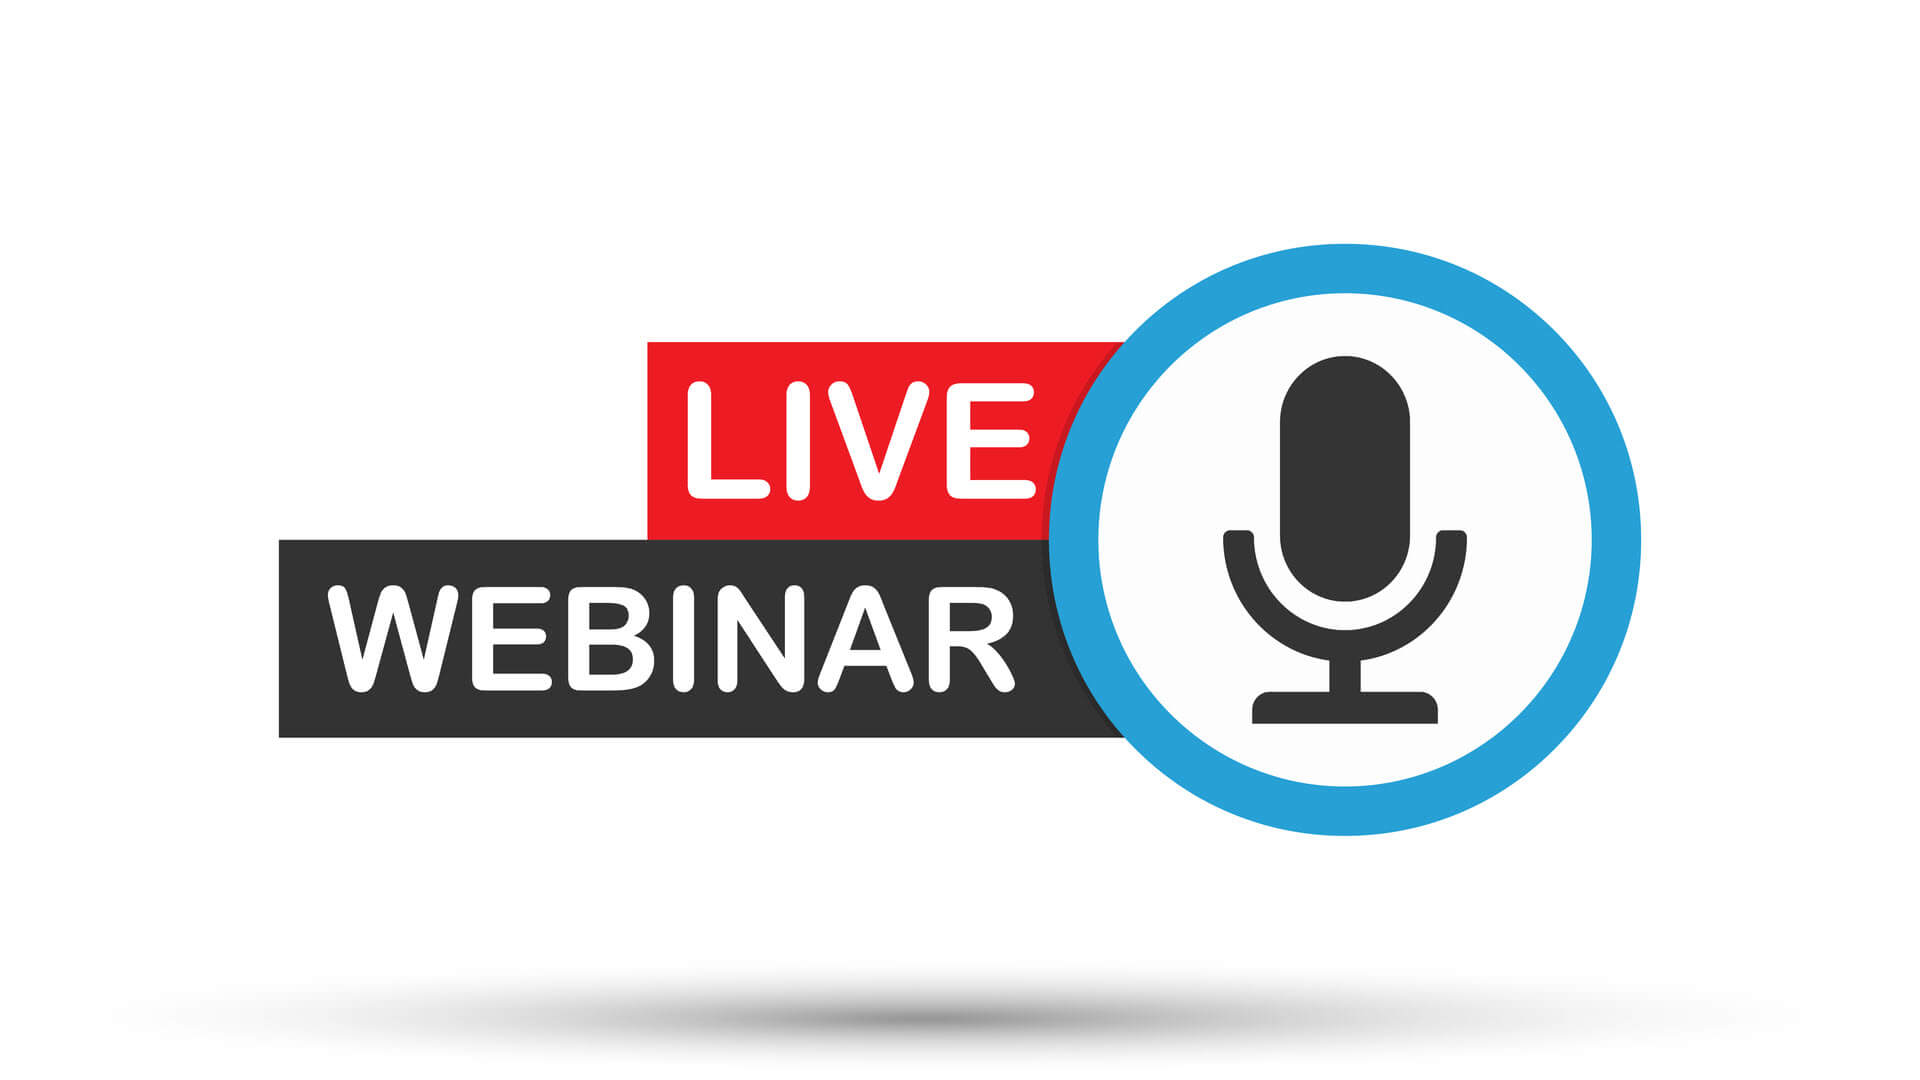 Don't miss this live Q&A with Scott Brinker! Get your martech questions answered.